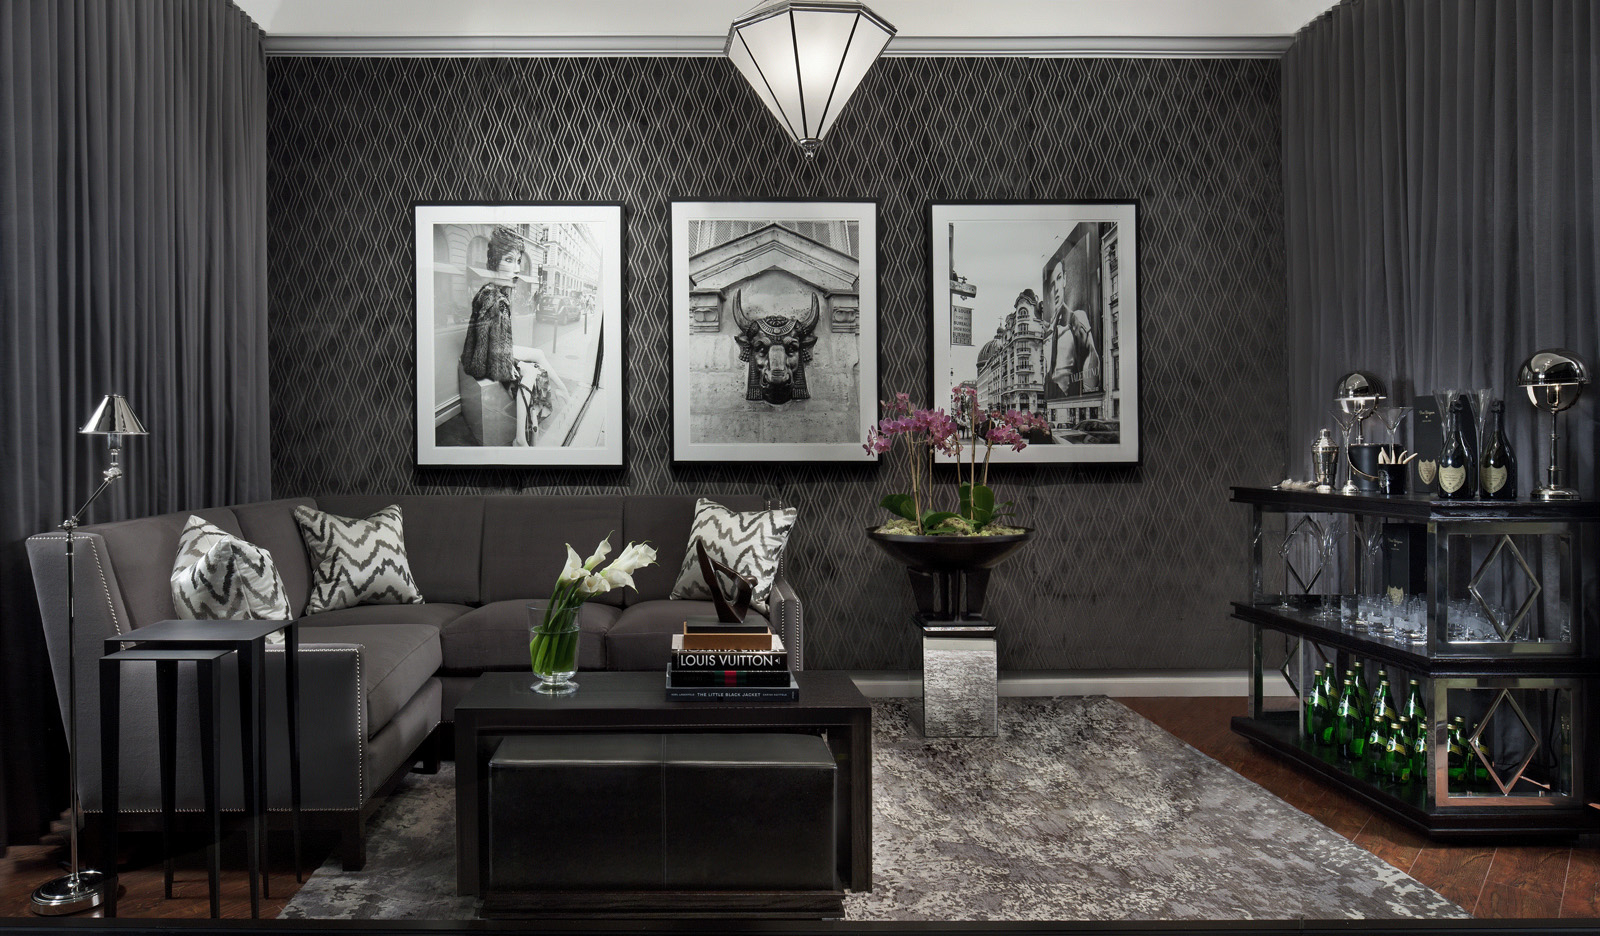 Black Furniture: Interior Design Photo Ideas. Dark wallpaper with pattern and the nappy dark gray rug on the canter of the room